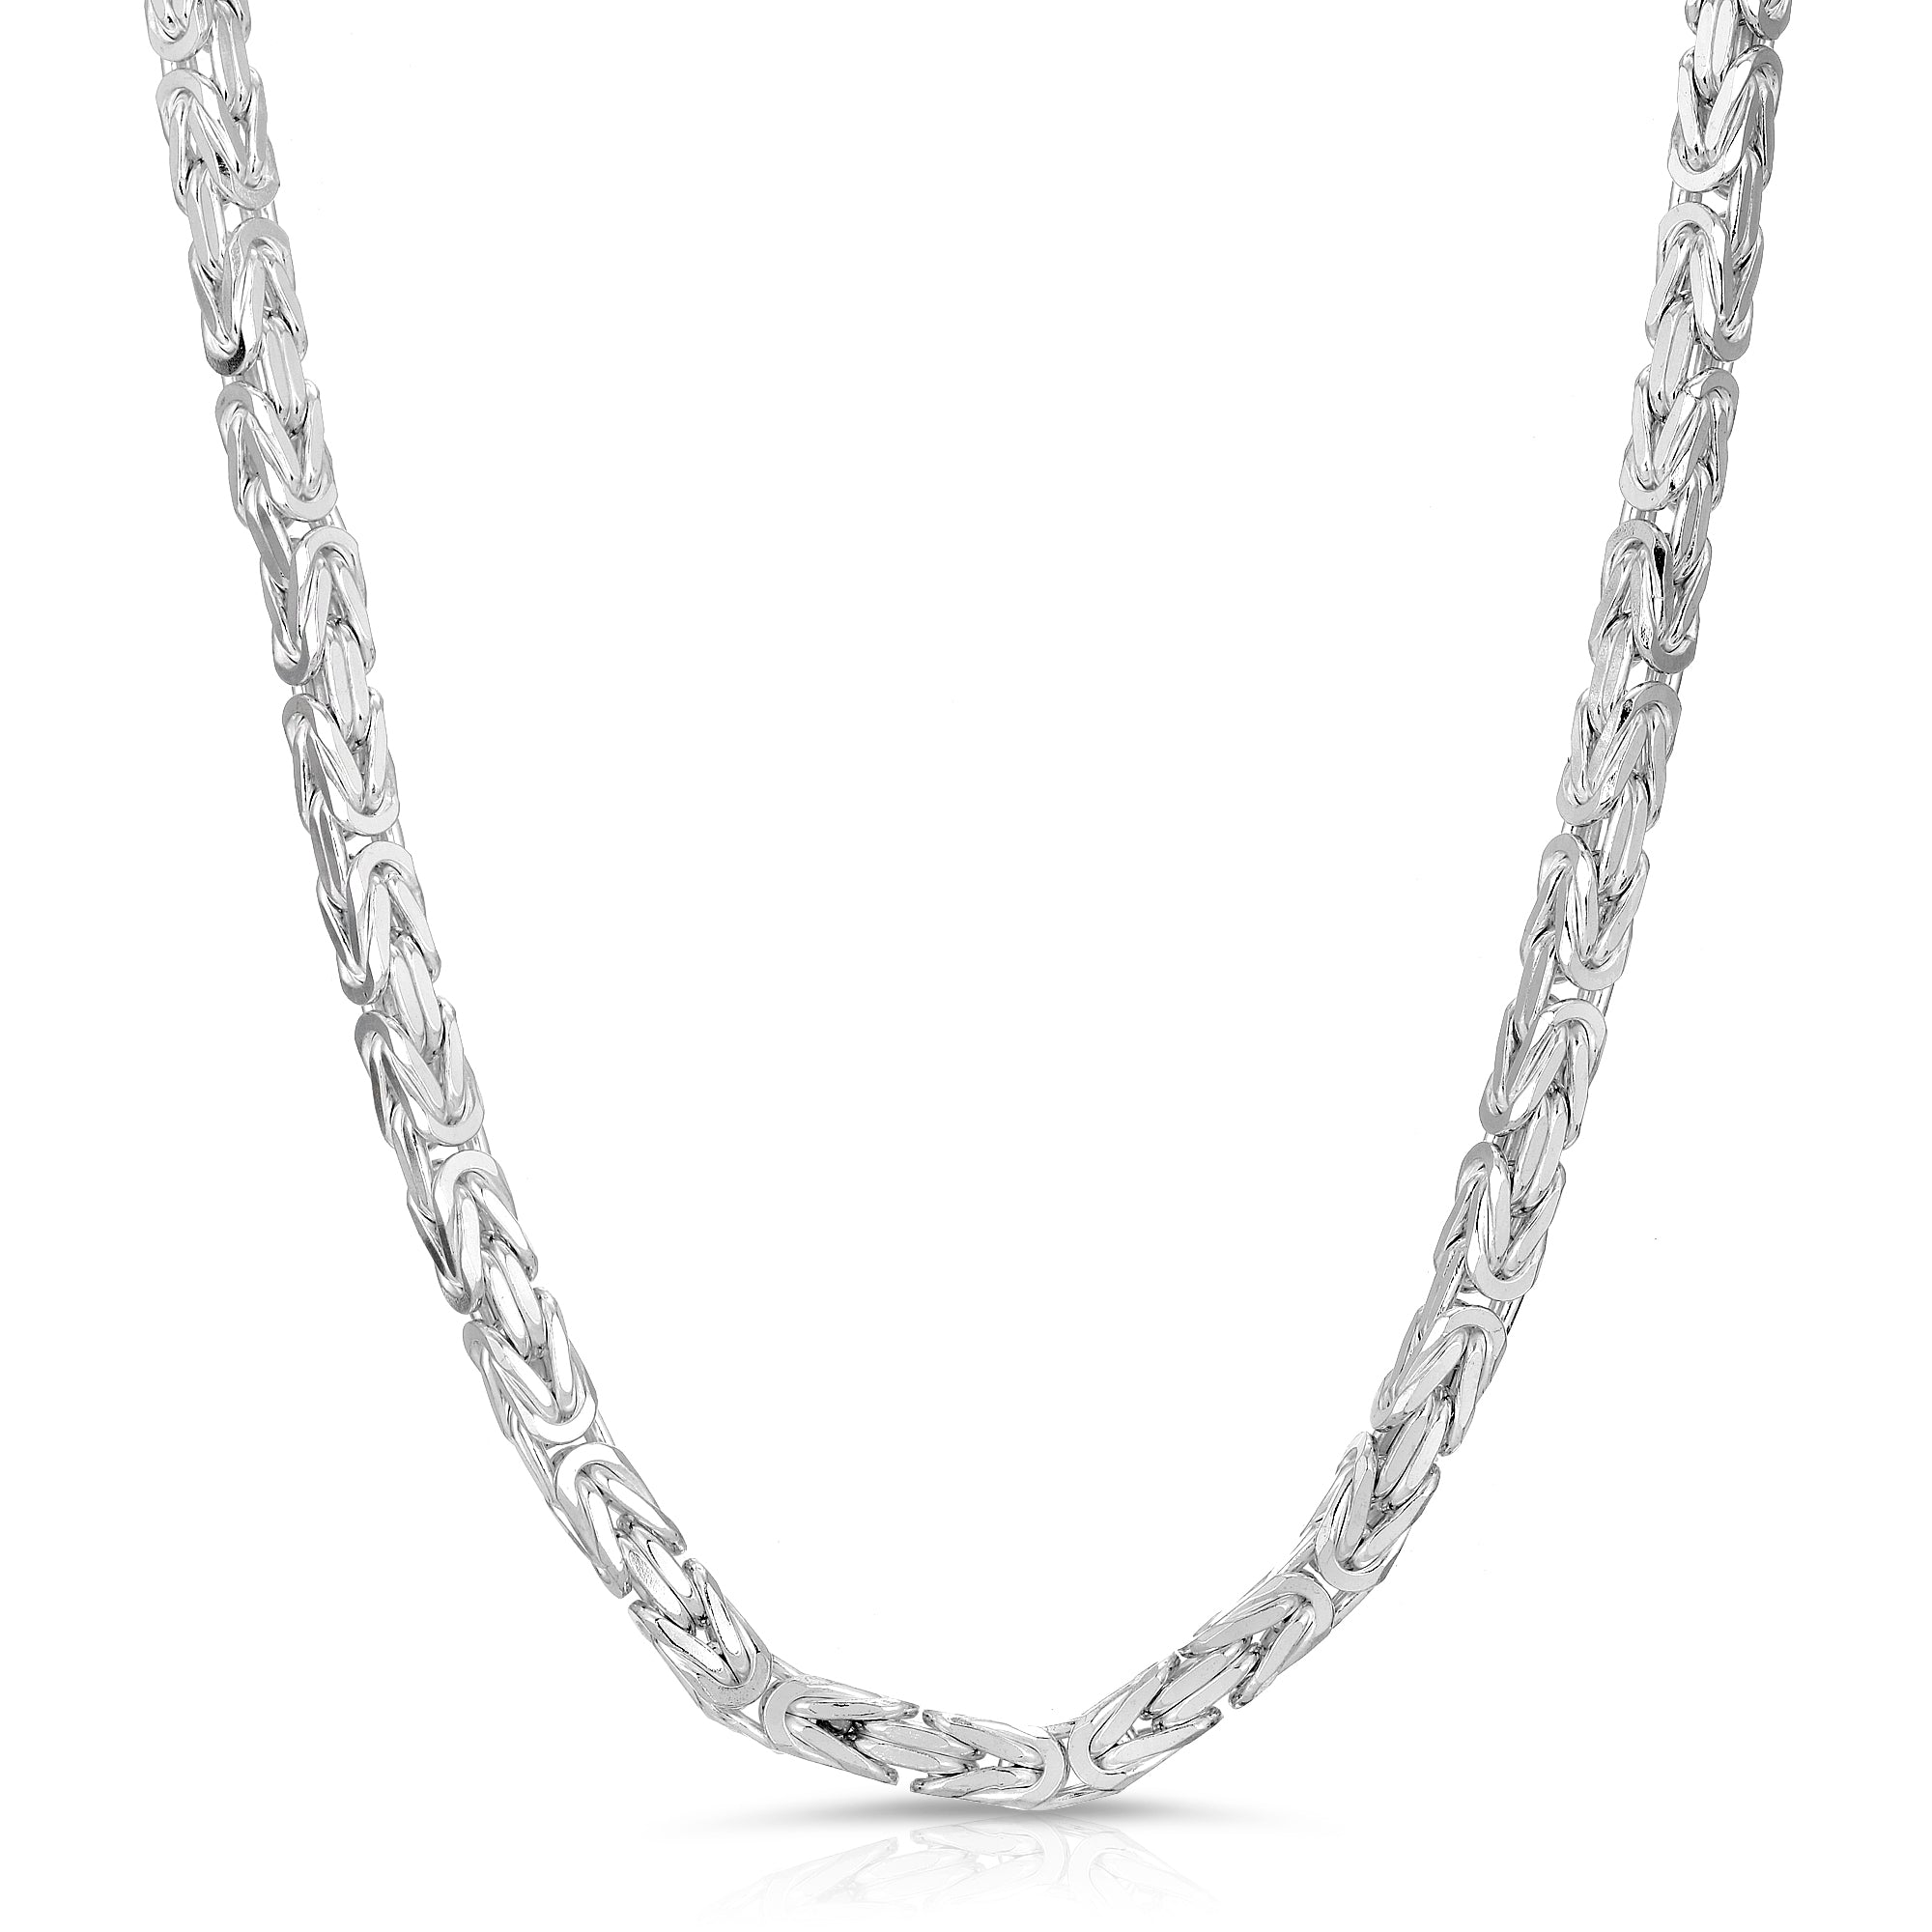 6mm Byzantine Sterling Silver Chain